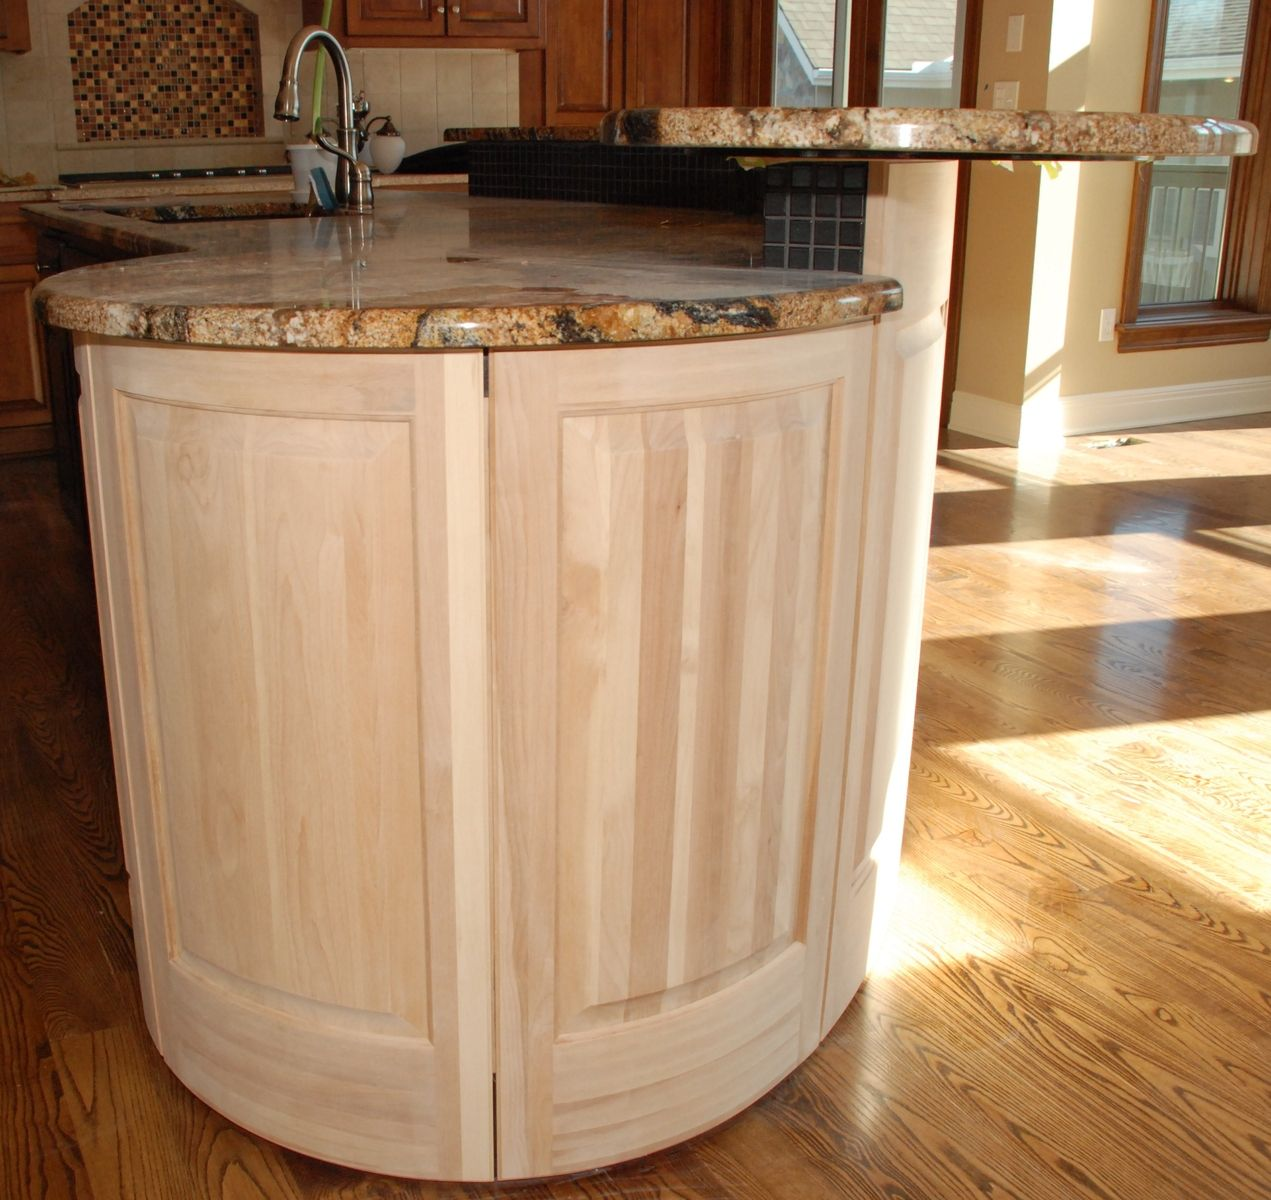 35 Kitchen Island Designs Celebrating Functional And: Hand Crafted Radius Kitchen Island By Belak Woodworking